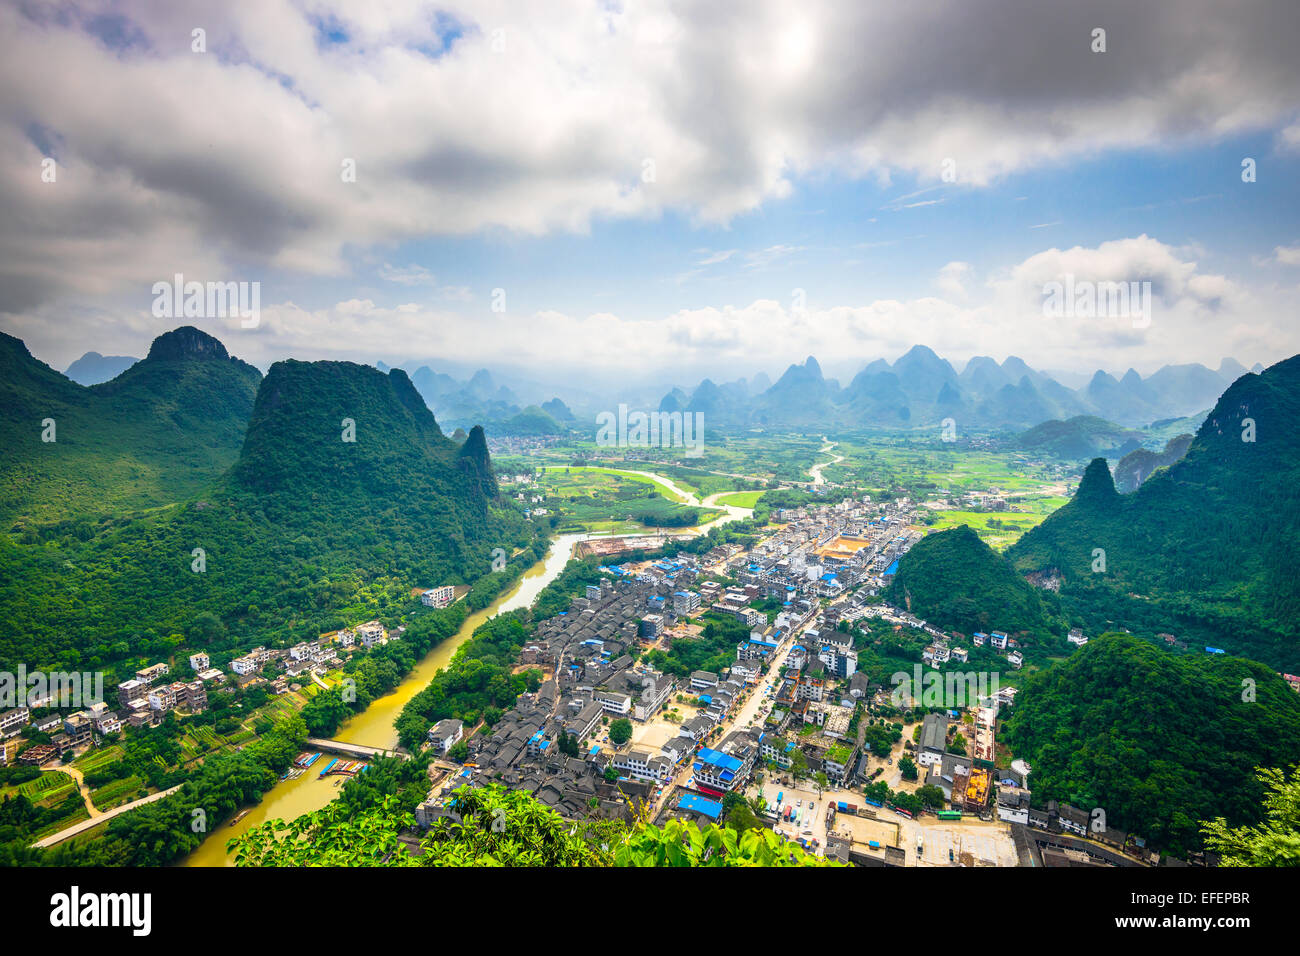 Karst Mountain landscape on the Li River in rural Guilin, Guangxi, China. - Stock Image